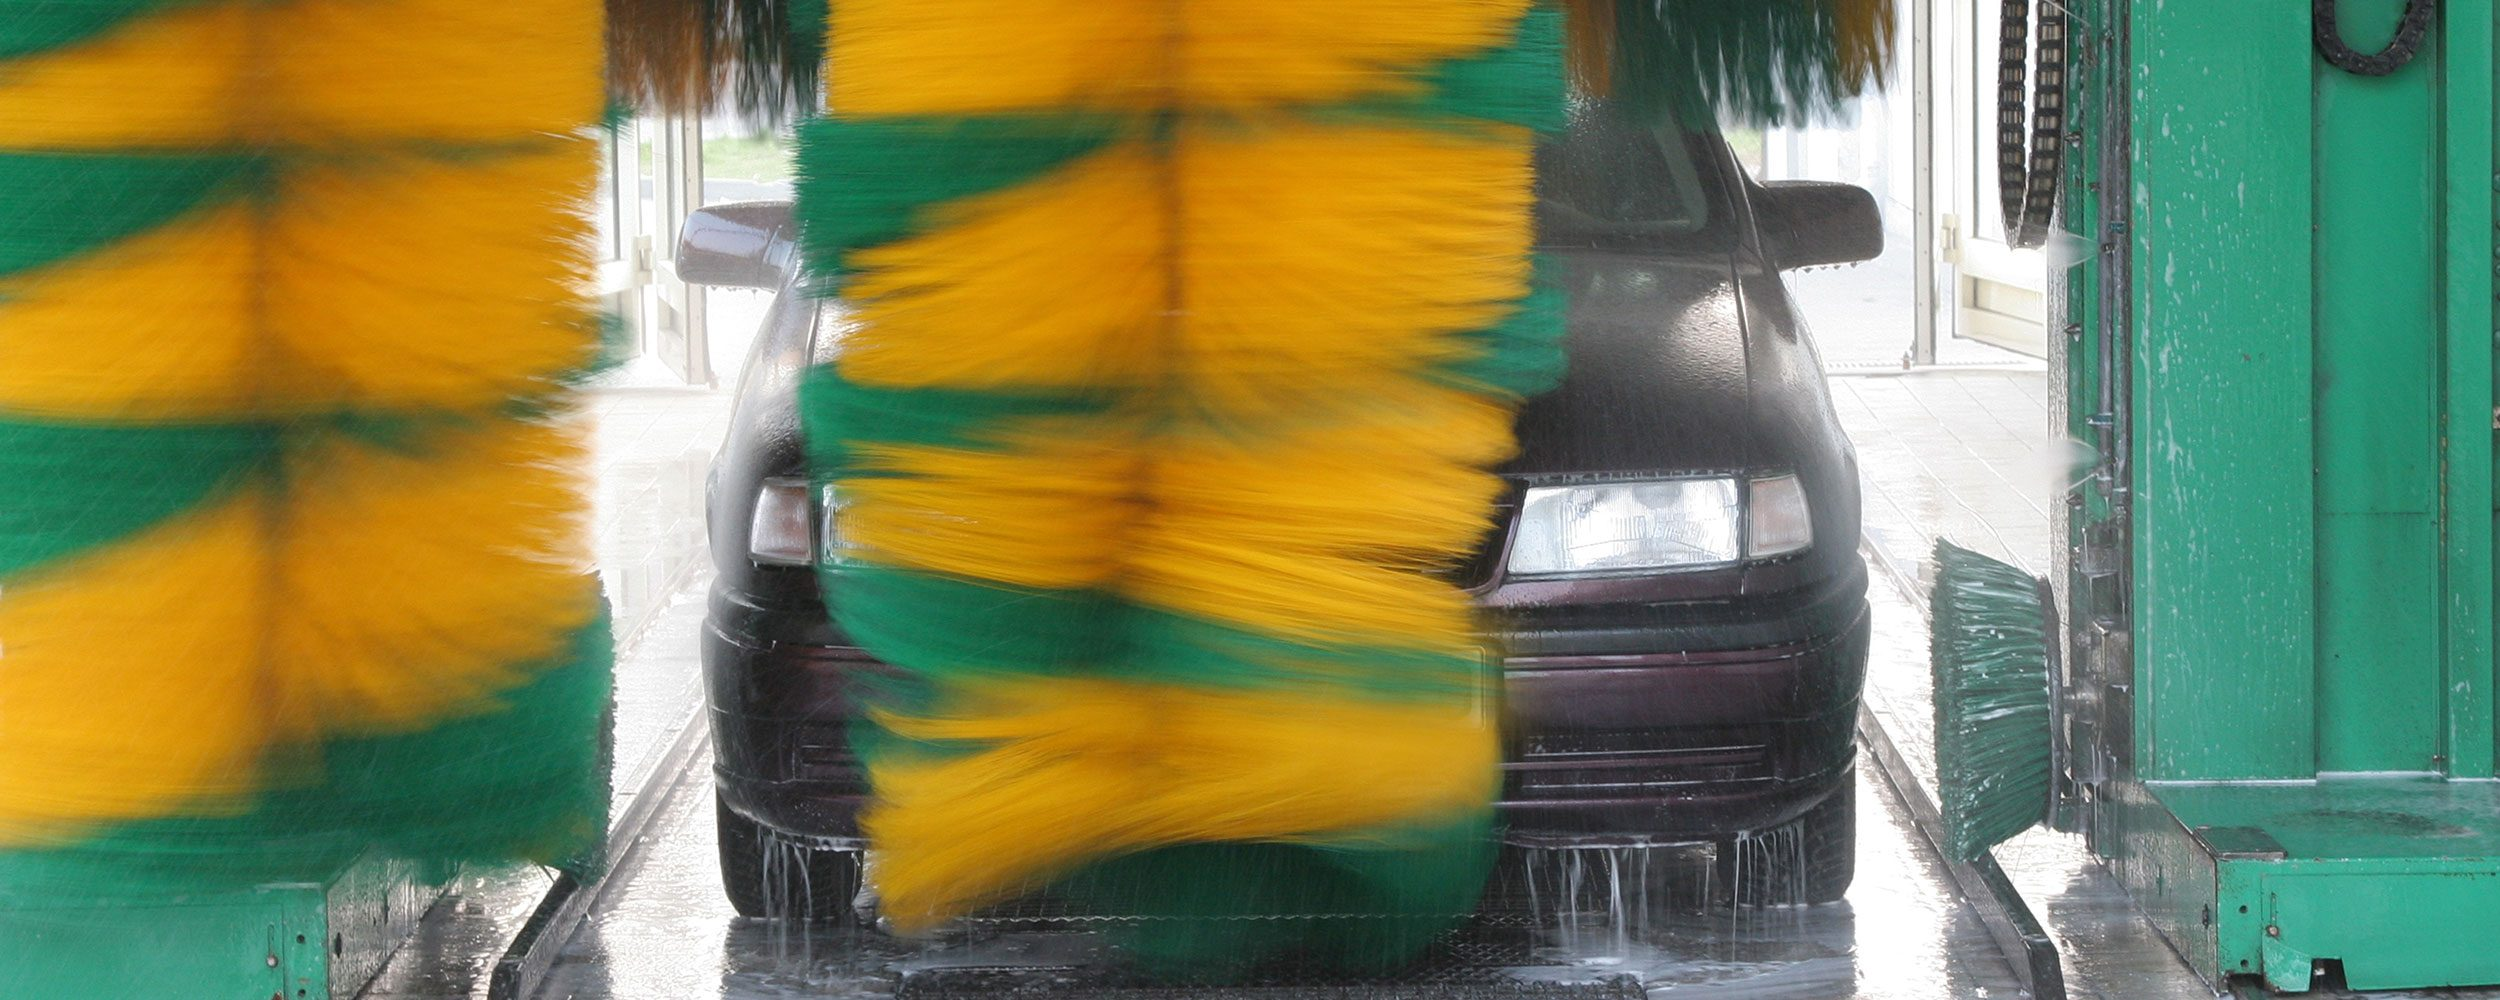 Vehicle Washing - Fileder Filter Systems